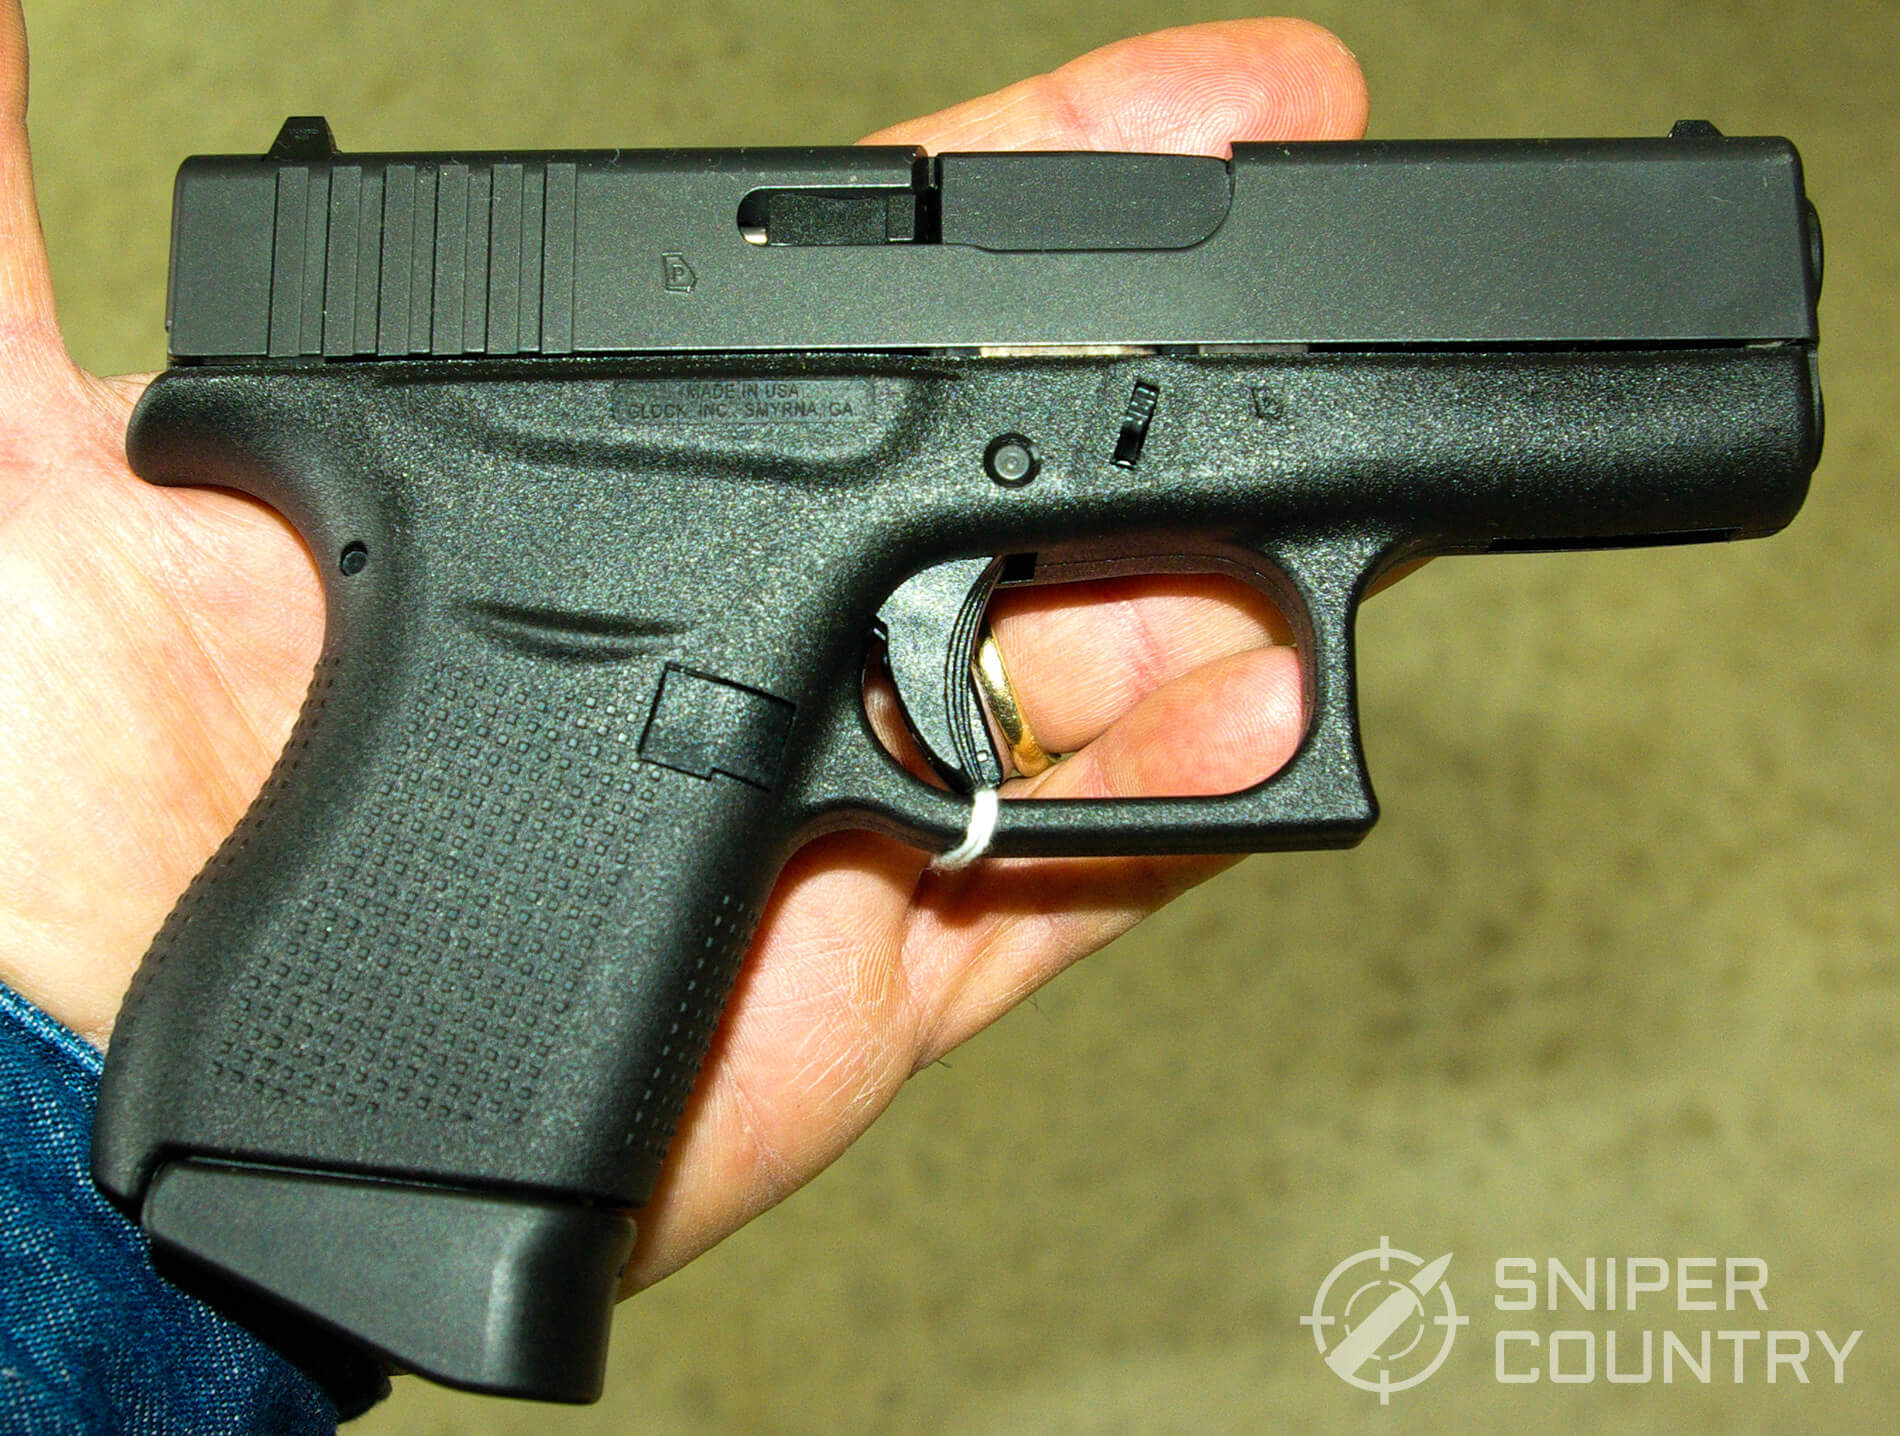 Glock 43 9mm in hand